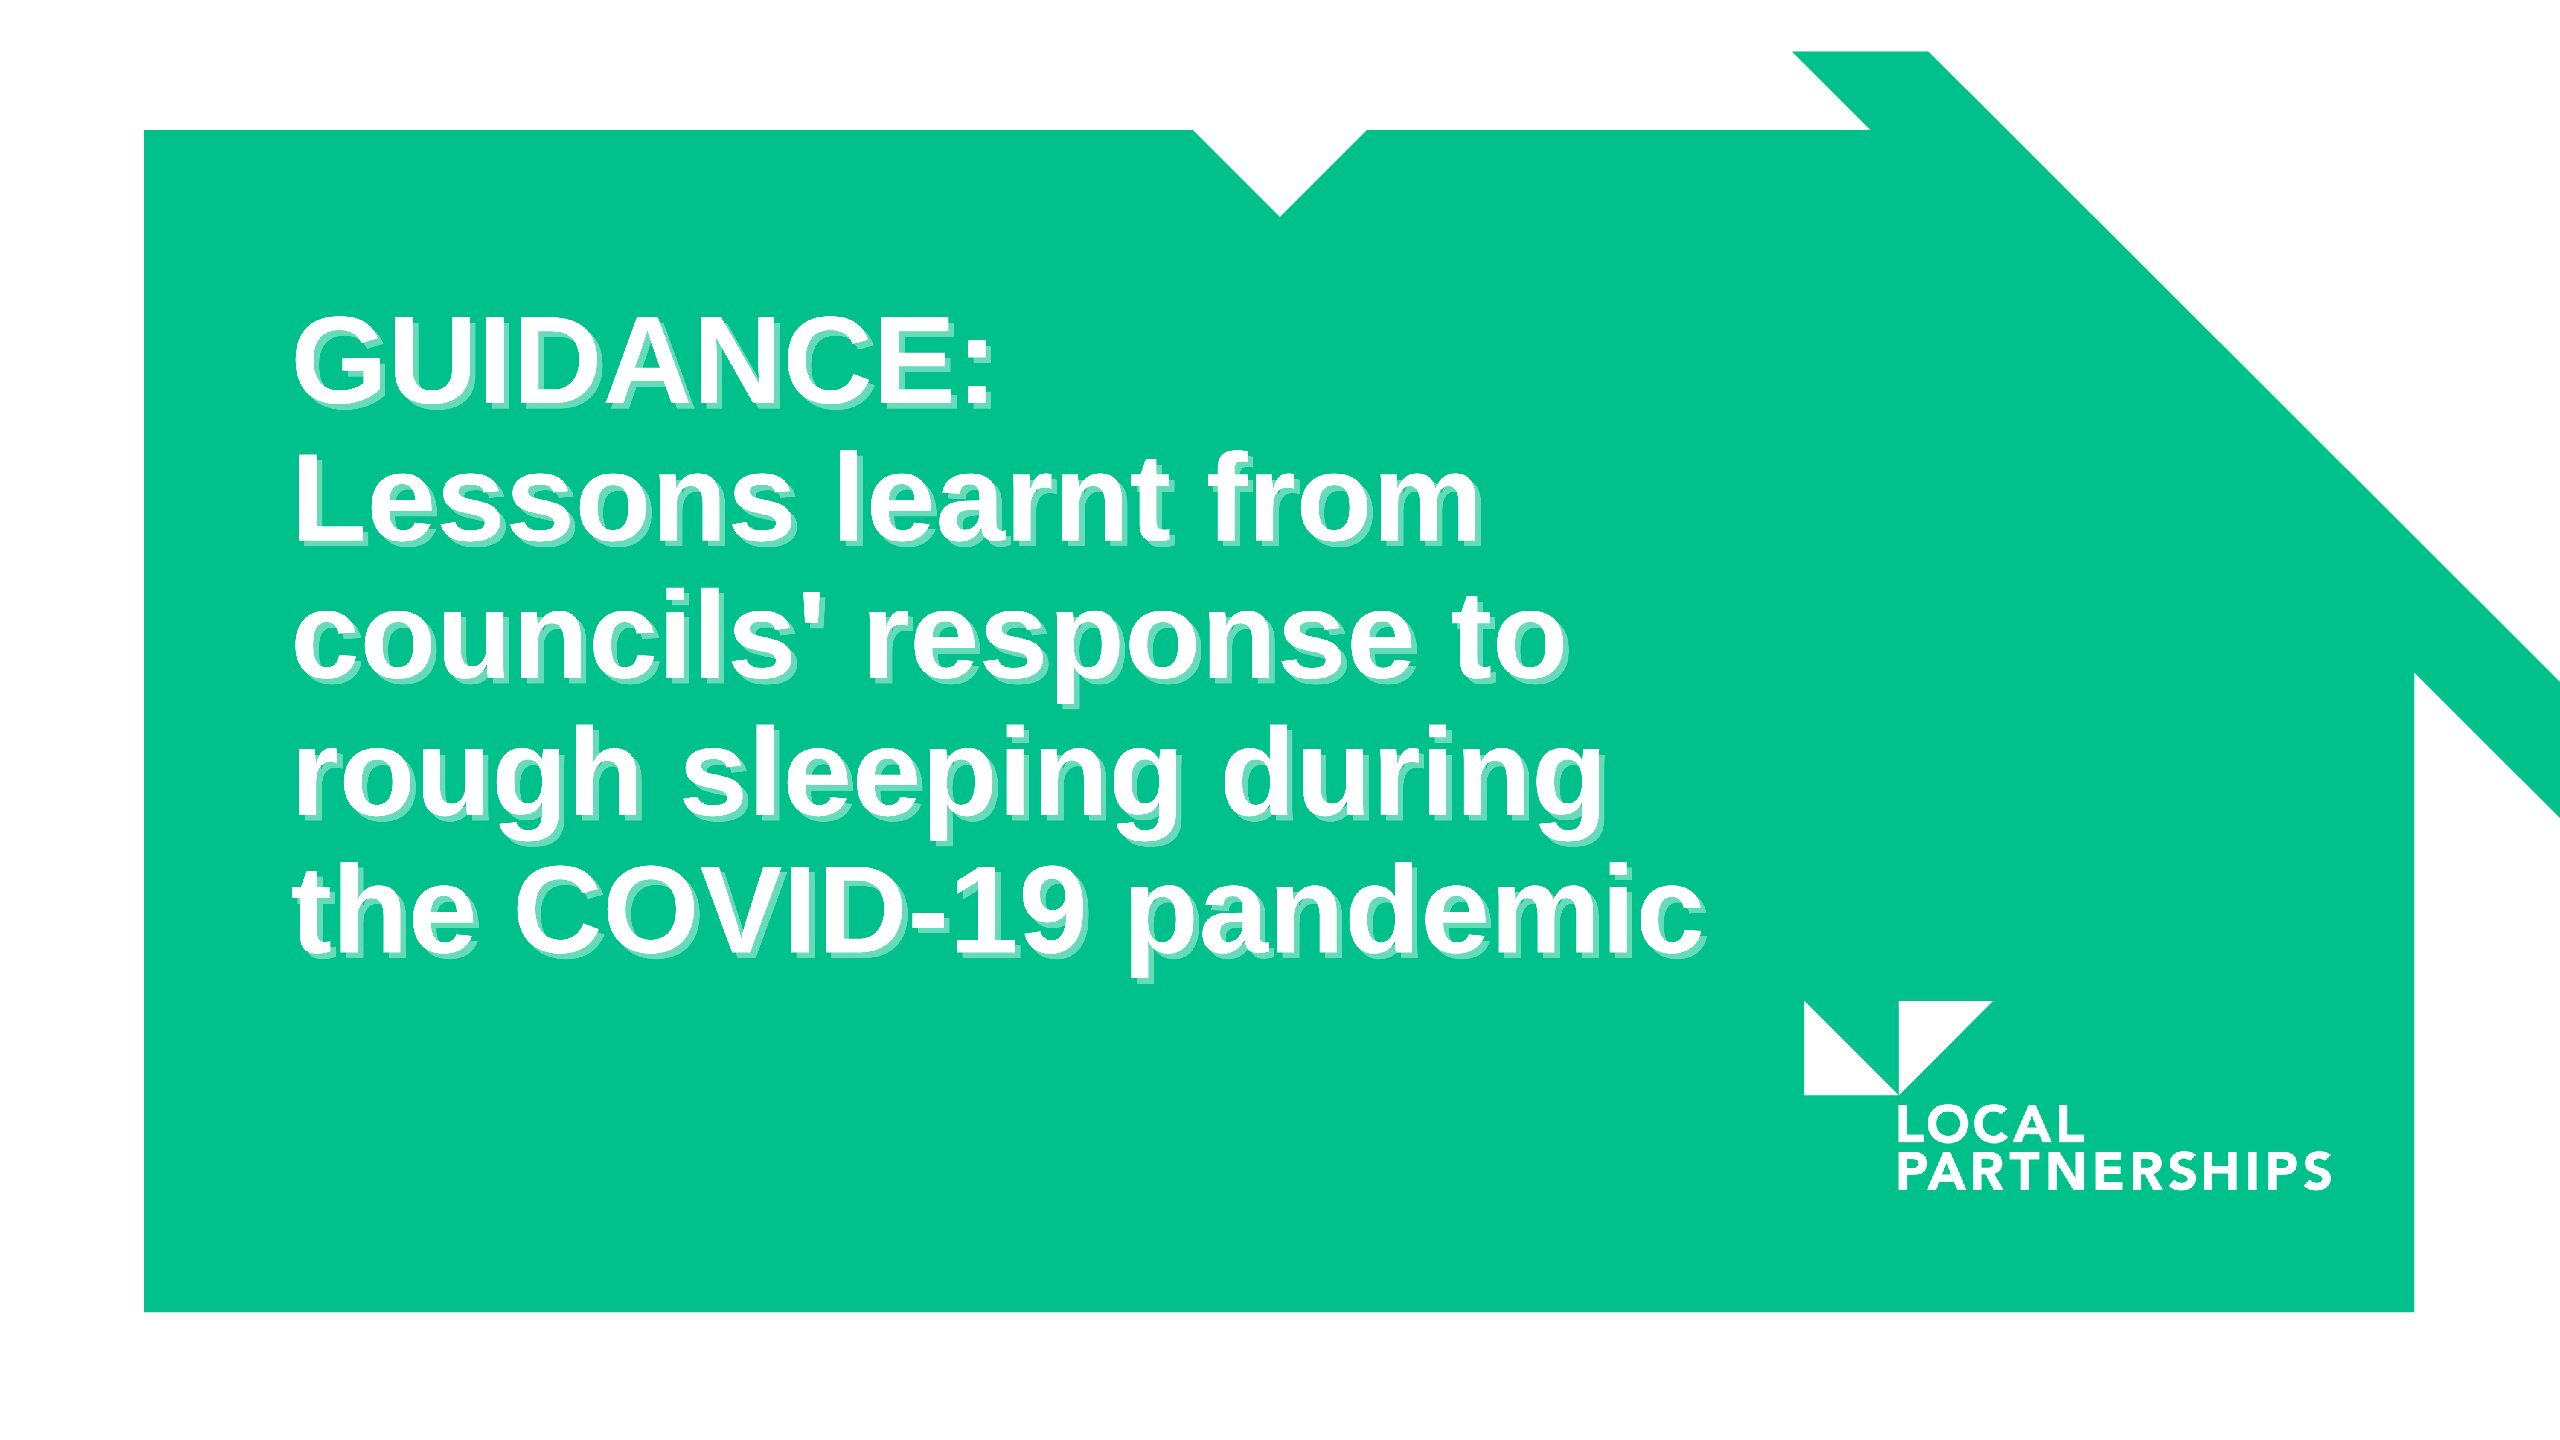 GUIDANCE: Lessons learnt from councils' response to rough sleeping during the COVID-19 pandemic